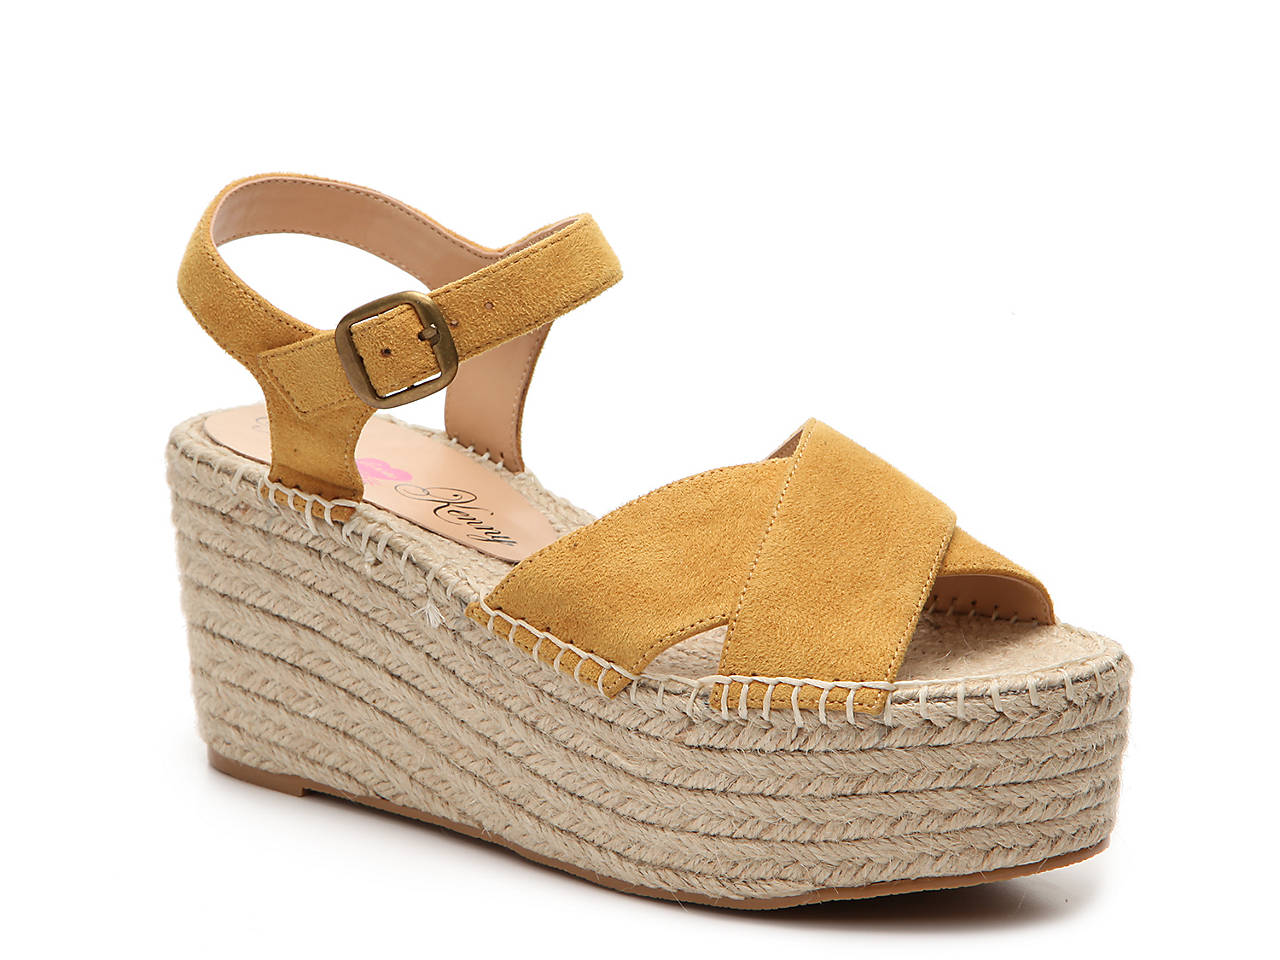 a4bc7097907 Penny Loves Kenny Friend Wedge Sandal Women s Shoes